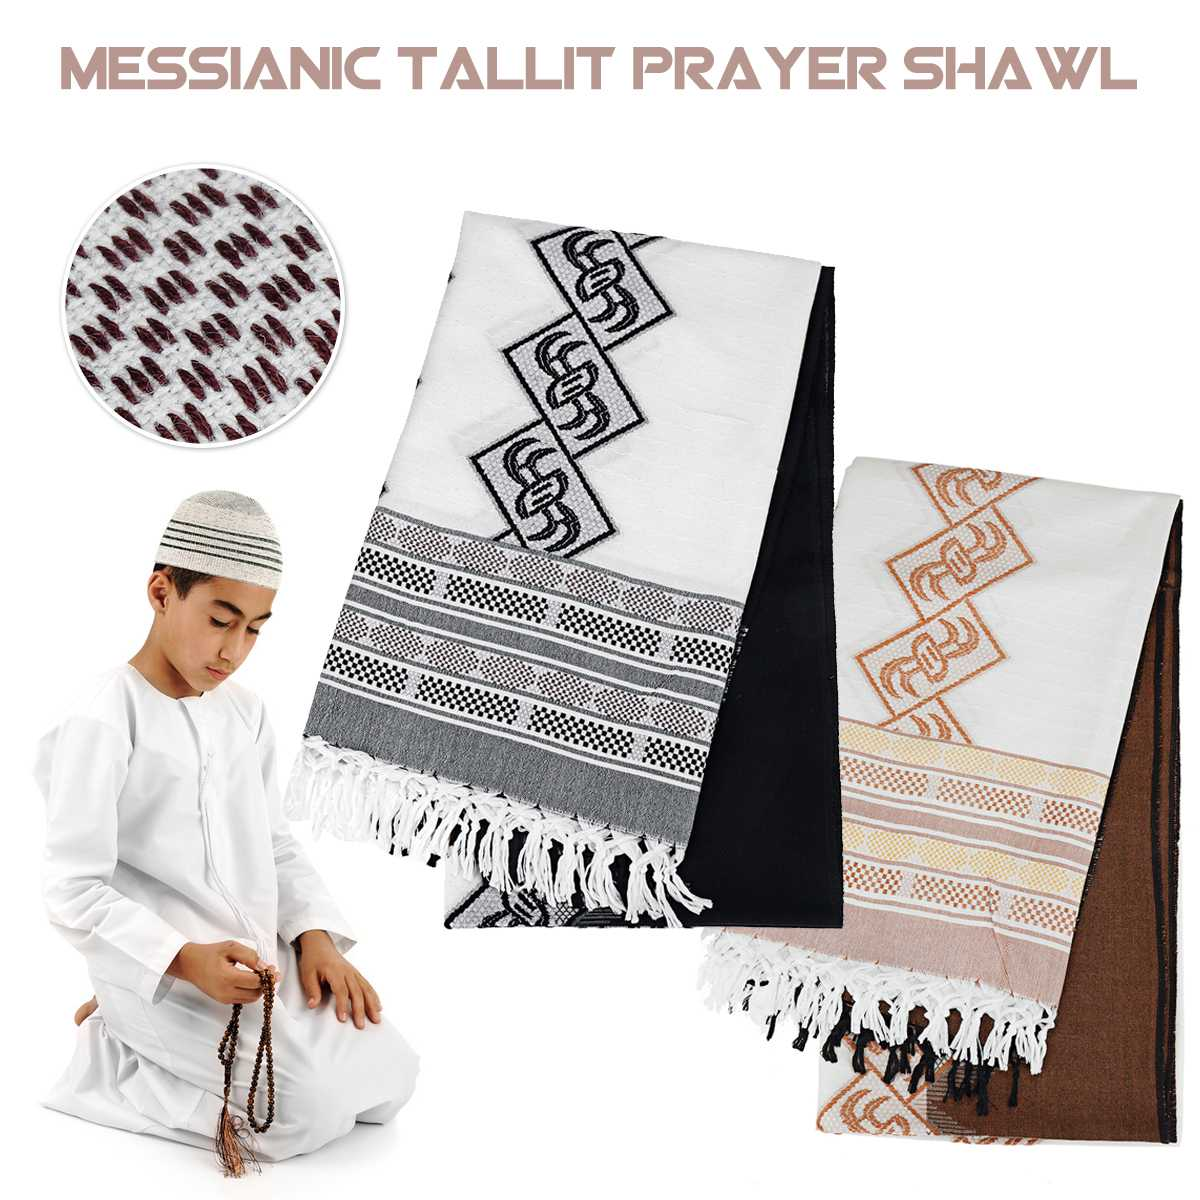 Jewish Tallit Talit Prayer Shawl Messianic Jewish Tallit Prayer Shawl For Men Fashion Islamic Judaism Jacquard Apron Apparel